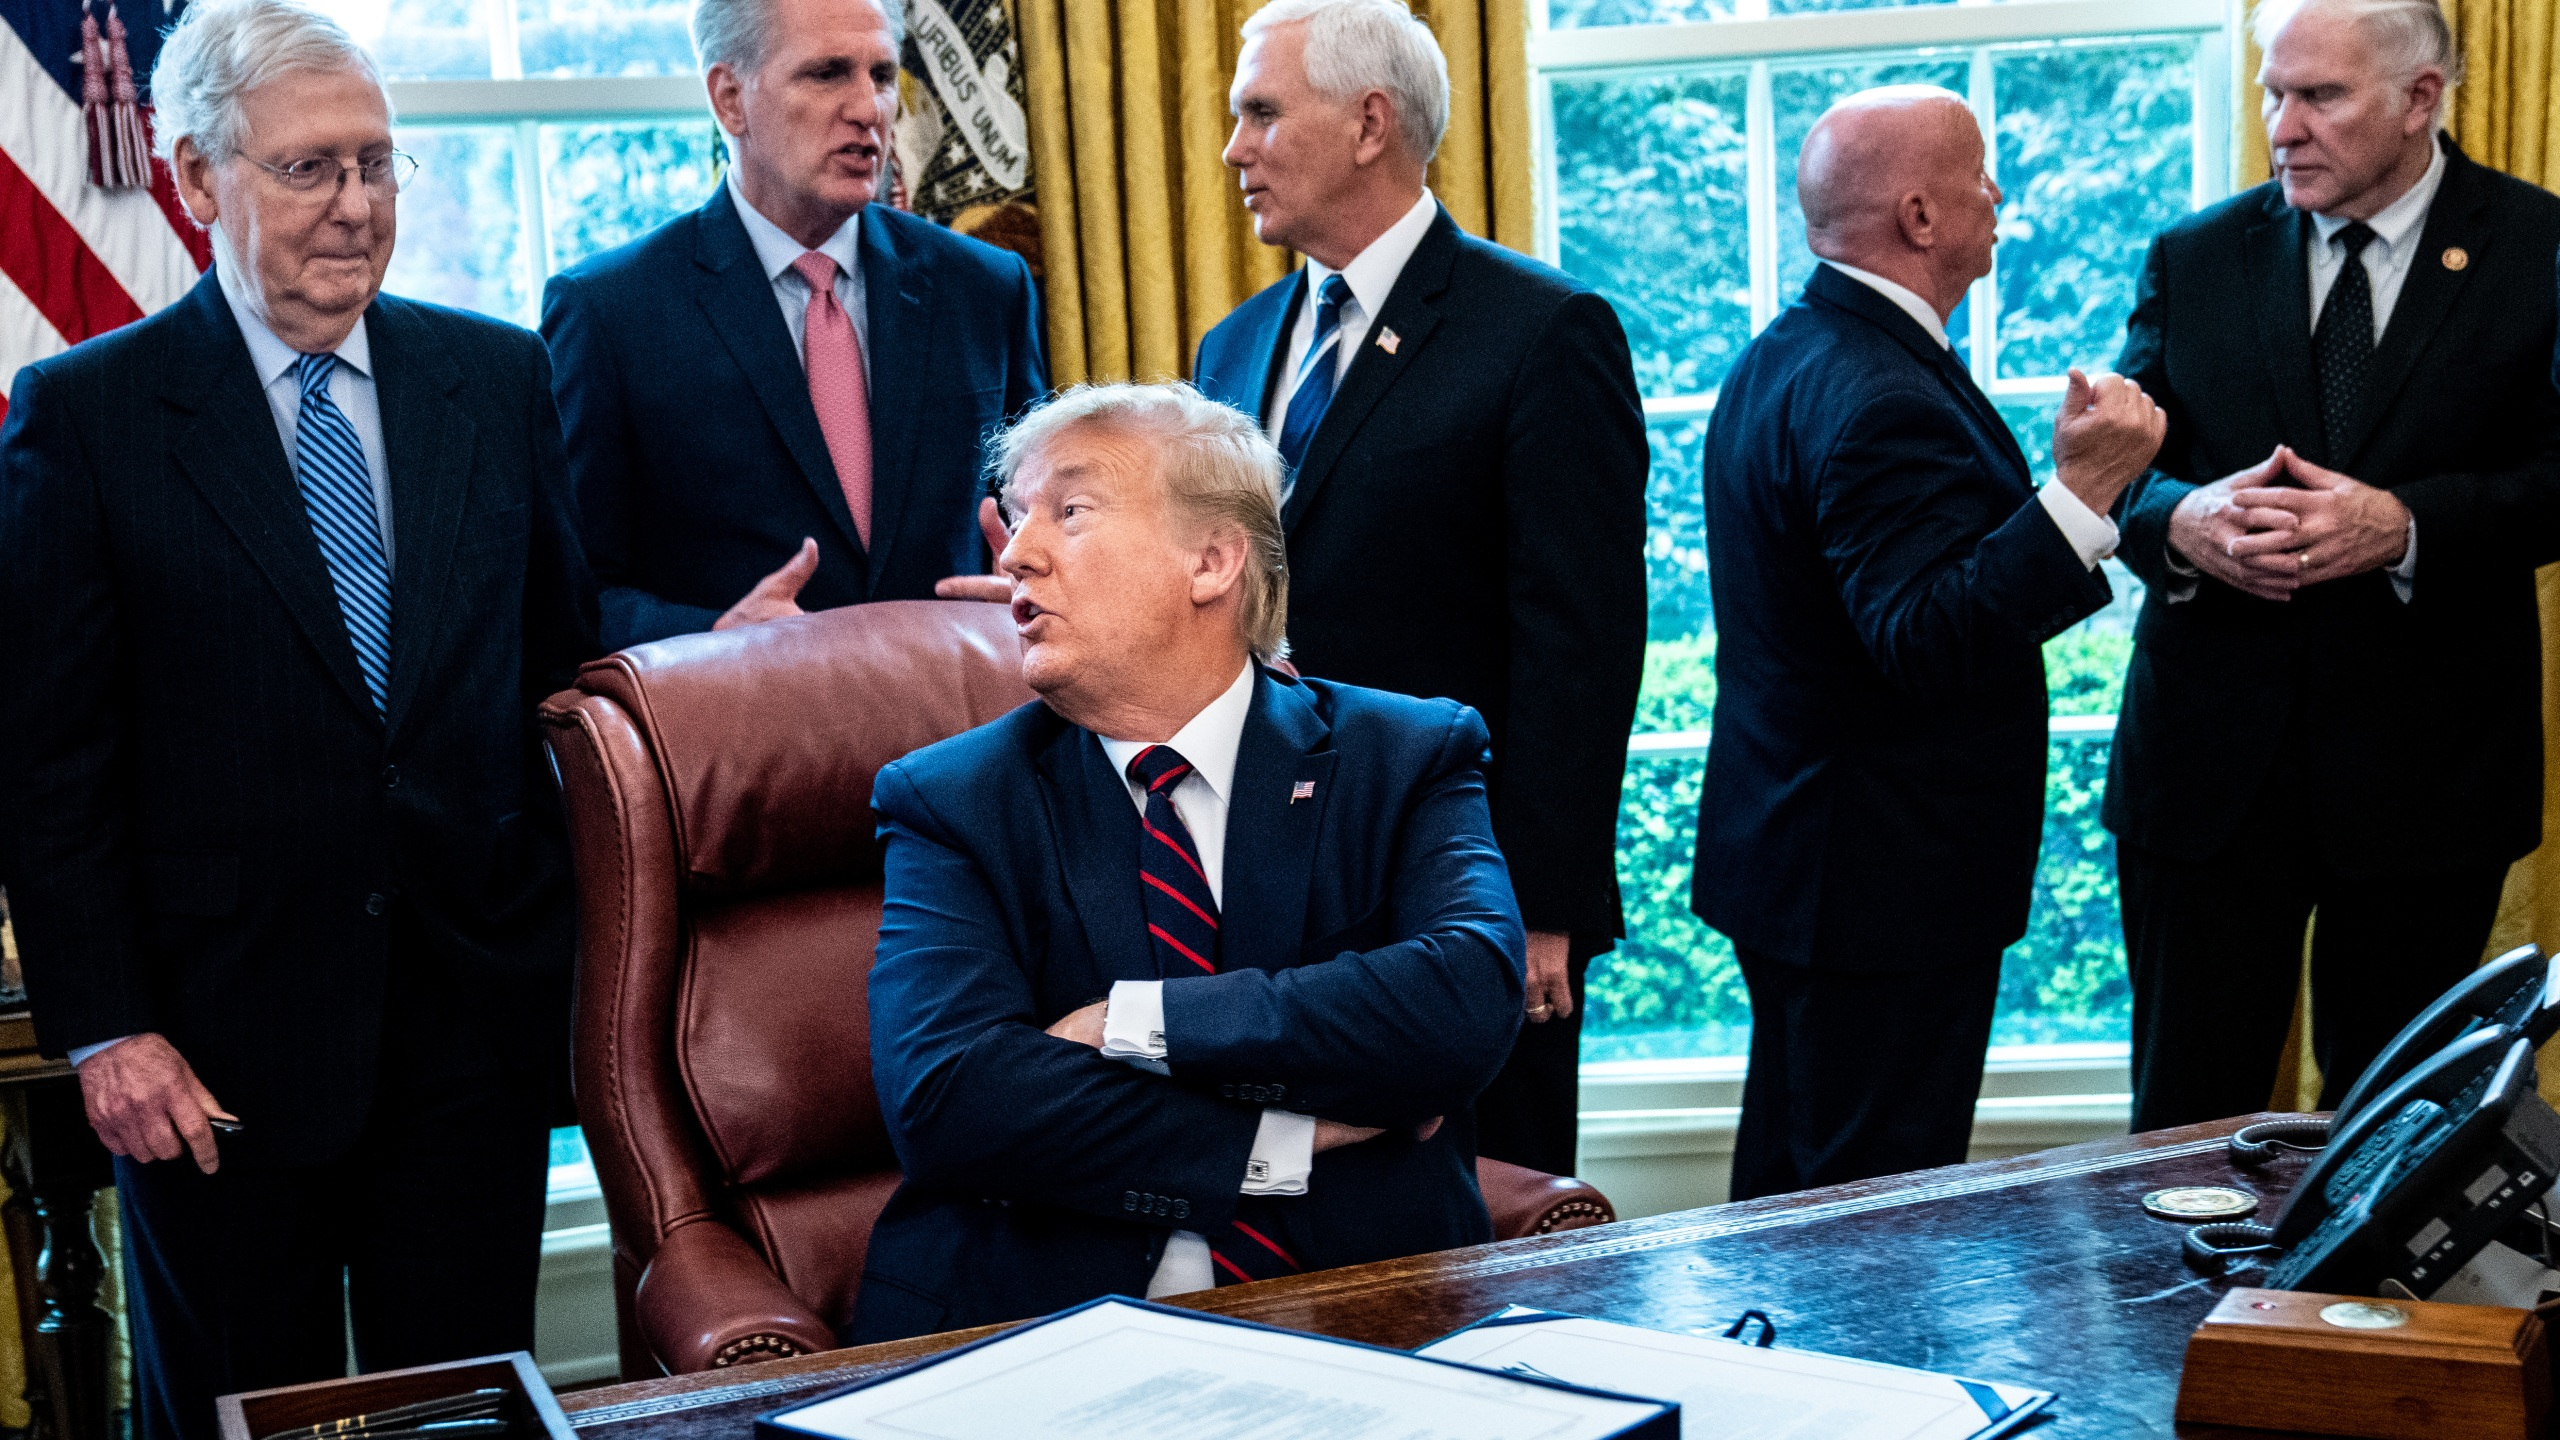 President Donald Trump speaks with Senate Majority Leader Mitch McConnell during a bill signing ceremony for the CARES Act in the Oval Office of the White House on March 27, 2020, in Washington, DC. (Erin Schaff-Pool/Getty Images)